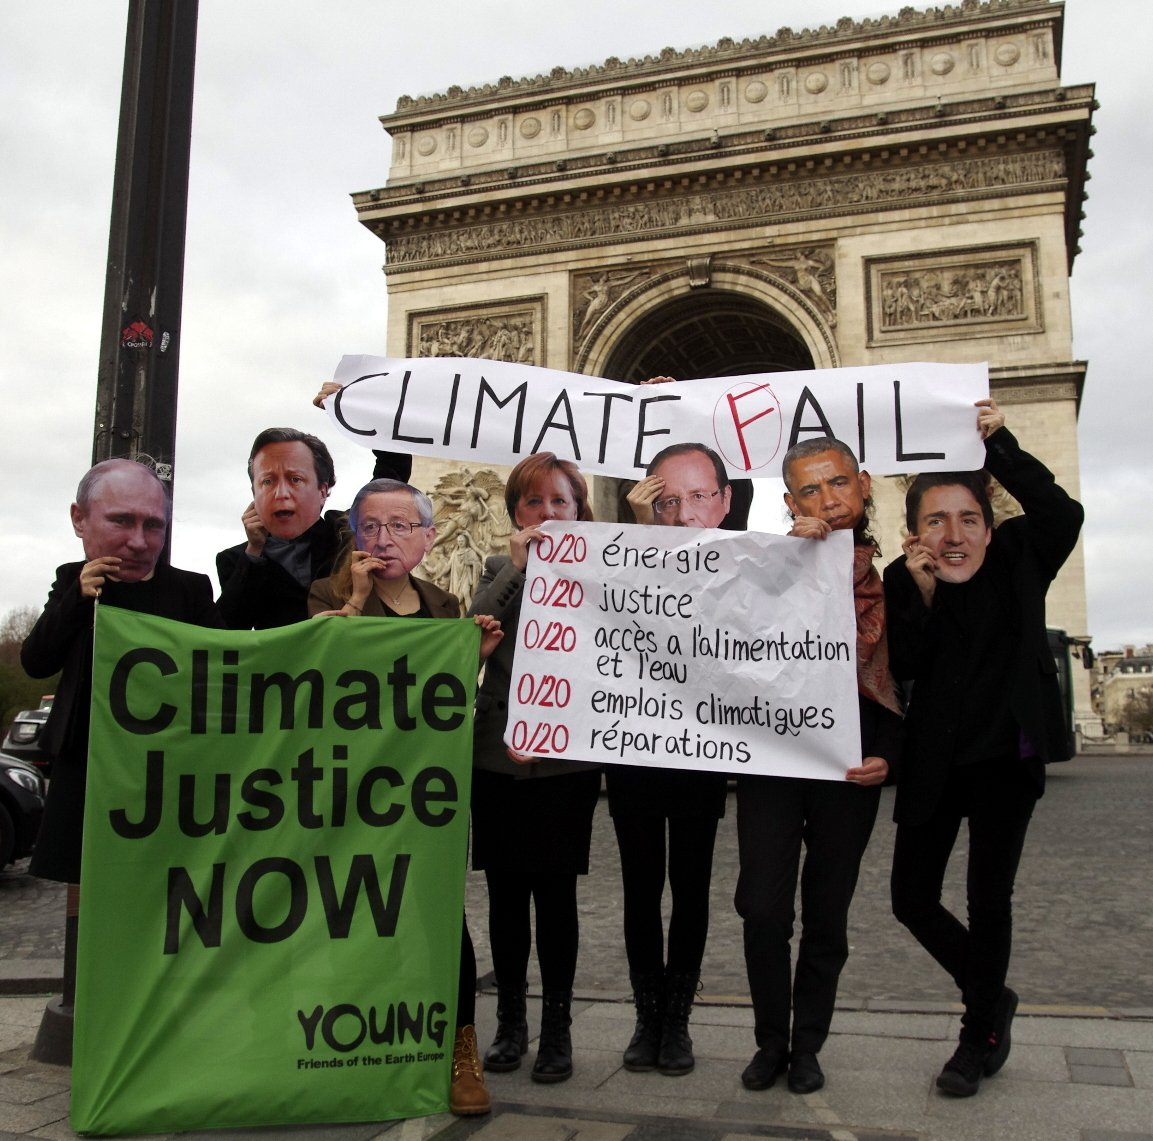 Thumbnail for #COP21 Update 1: Rhetoric Vs. Reality